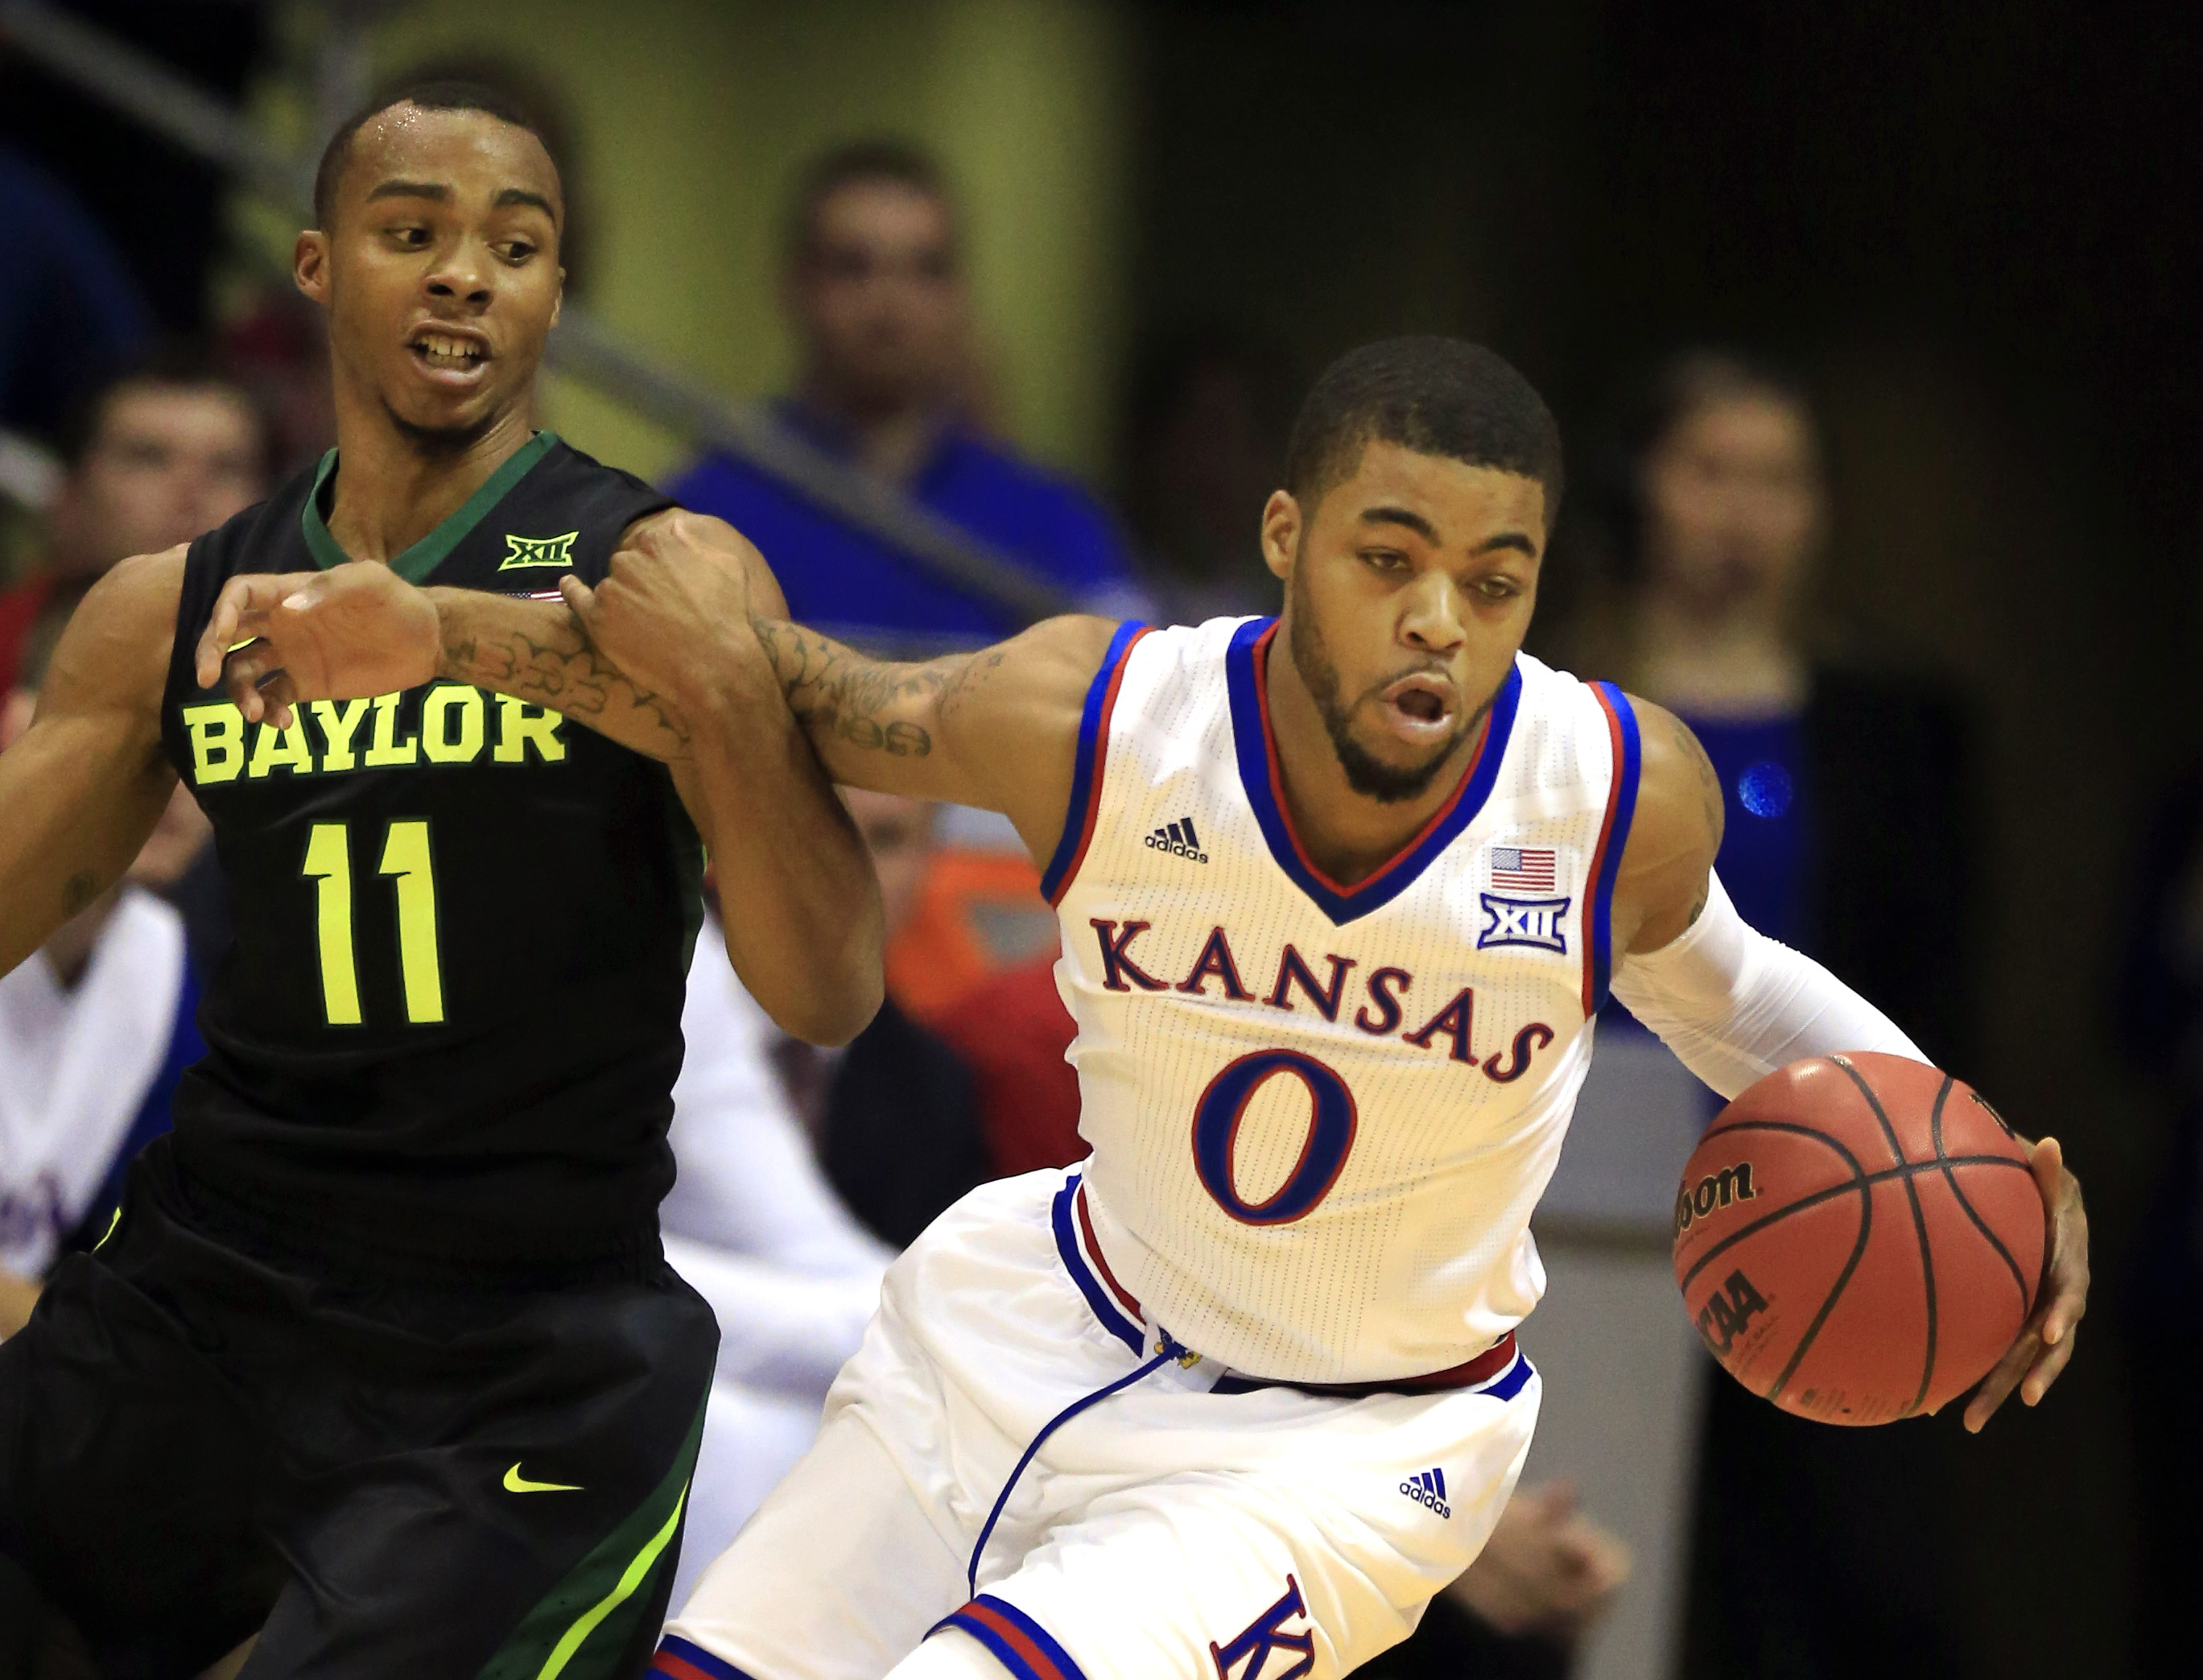 Kansas guard Frank Mason III (0) breaks away from Baylor guard Lester Medford (11) during the first half of an NCAA college basketball game in Lawrence, Kan., Saturday, Jan. 2, 2016. (AP Photo/Orlin Wagner)